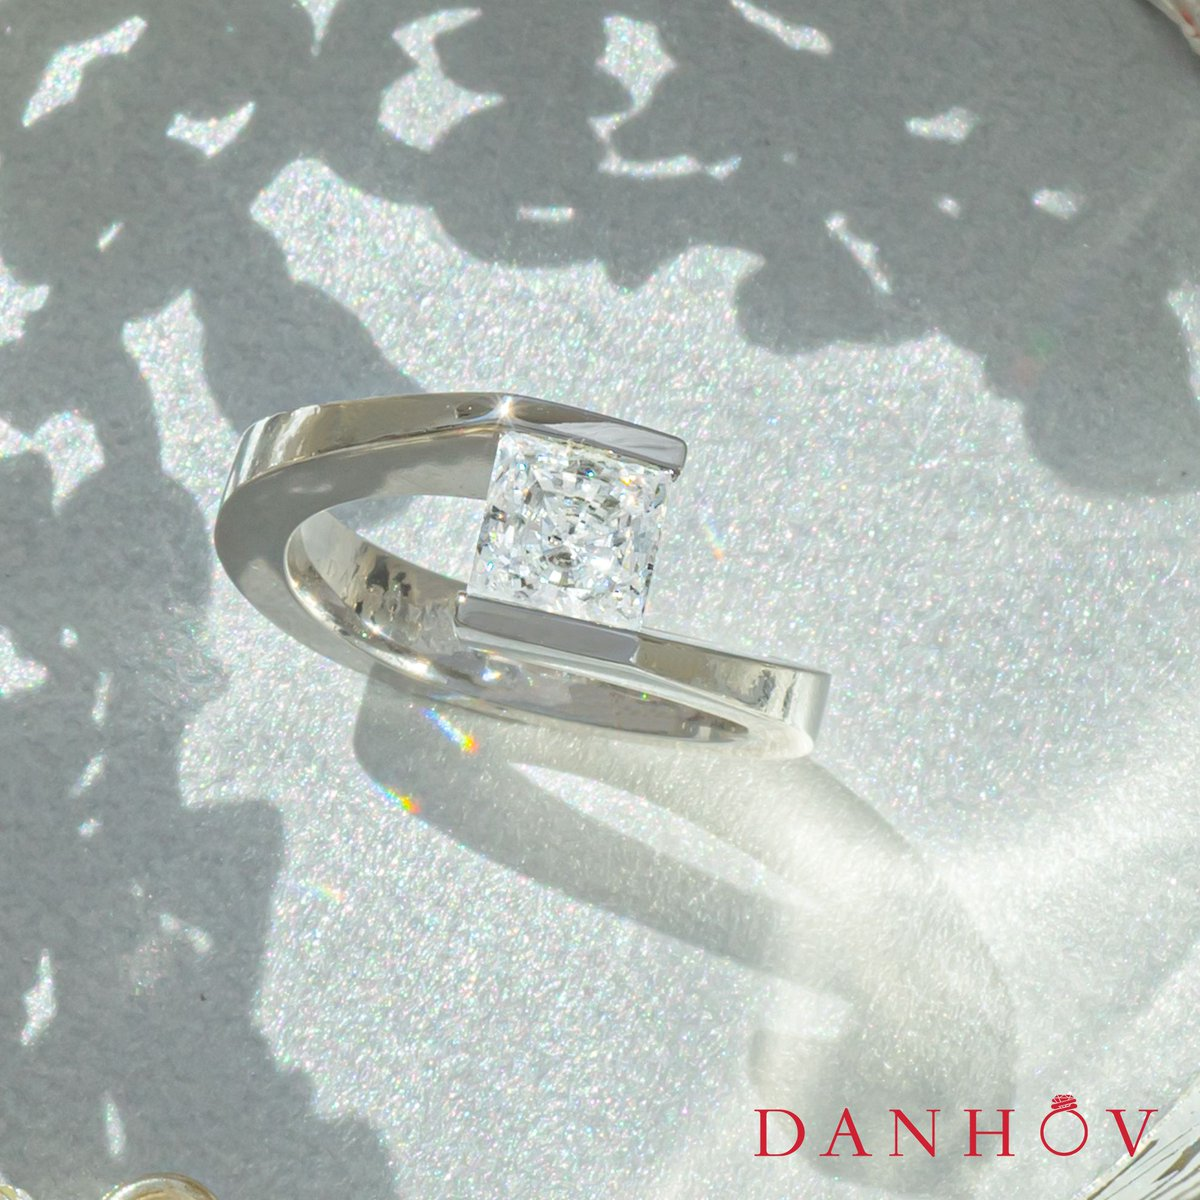 Celebrate the magic of your love 💖 Browse our collection of award-winning engagement rings to propose with a one of a kind ring!  Style # V123 ||   #Danhov #engagementring #diamond #diamondring #jewelry #diaonds #jewelrydesigner